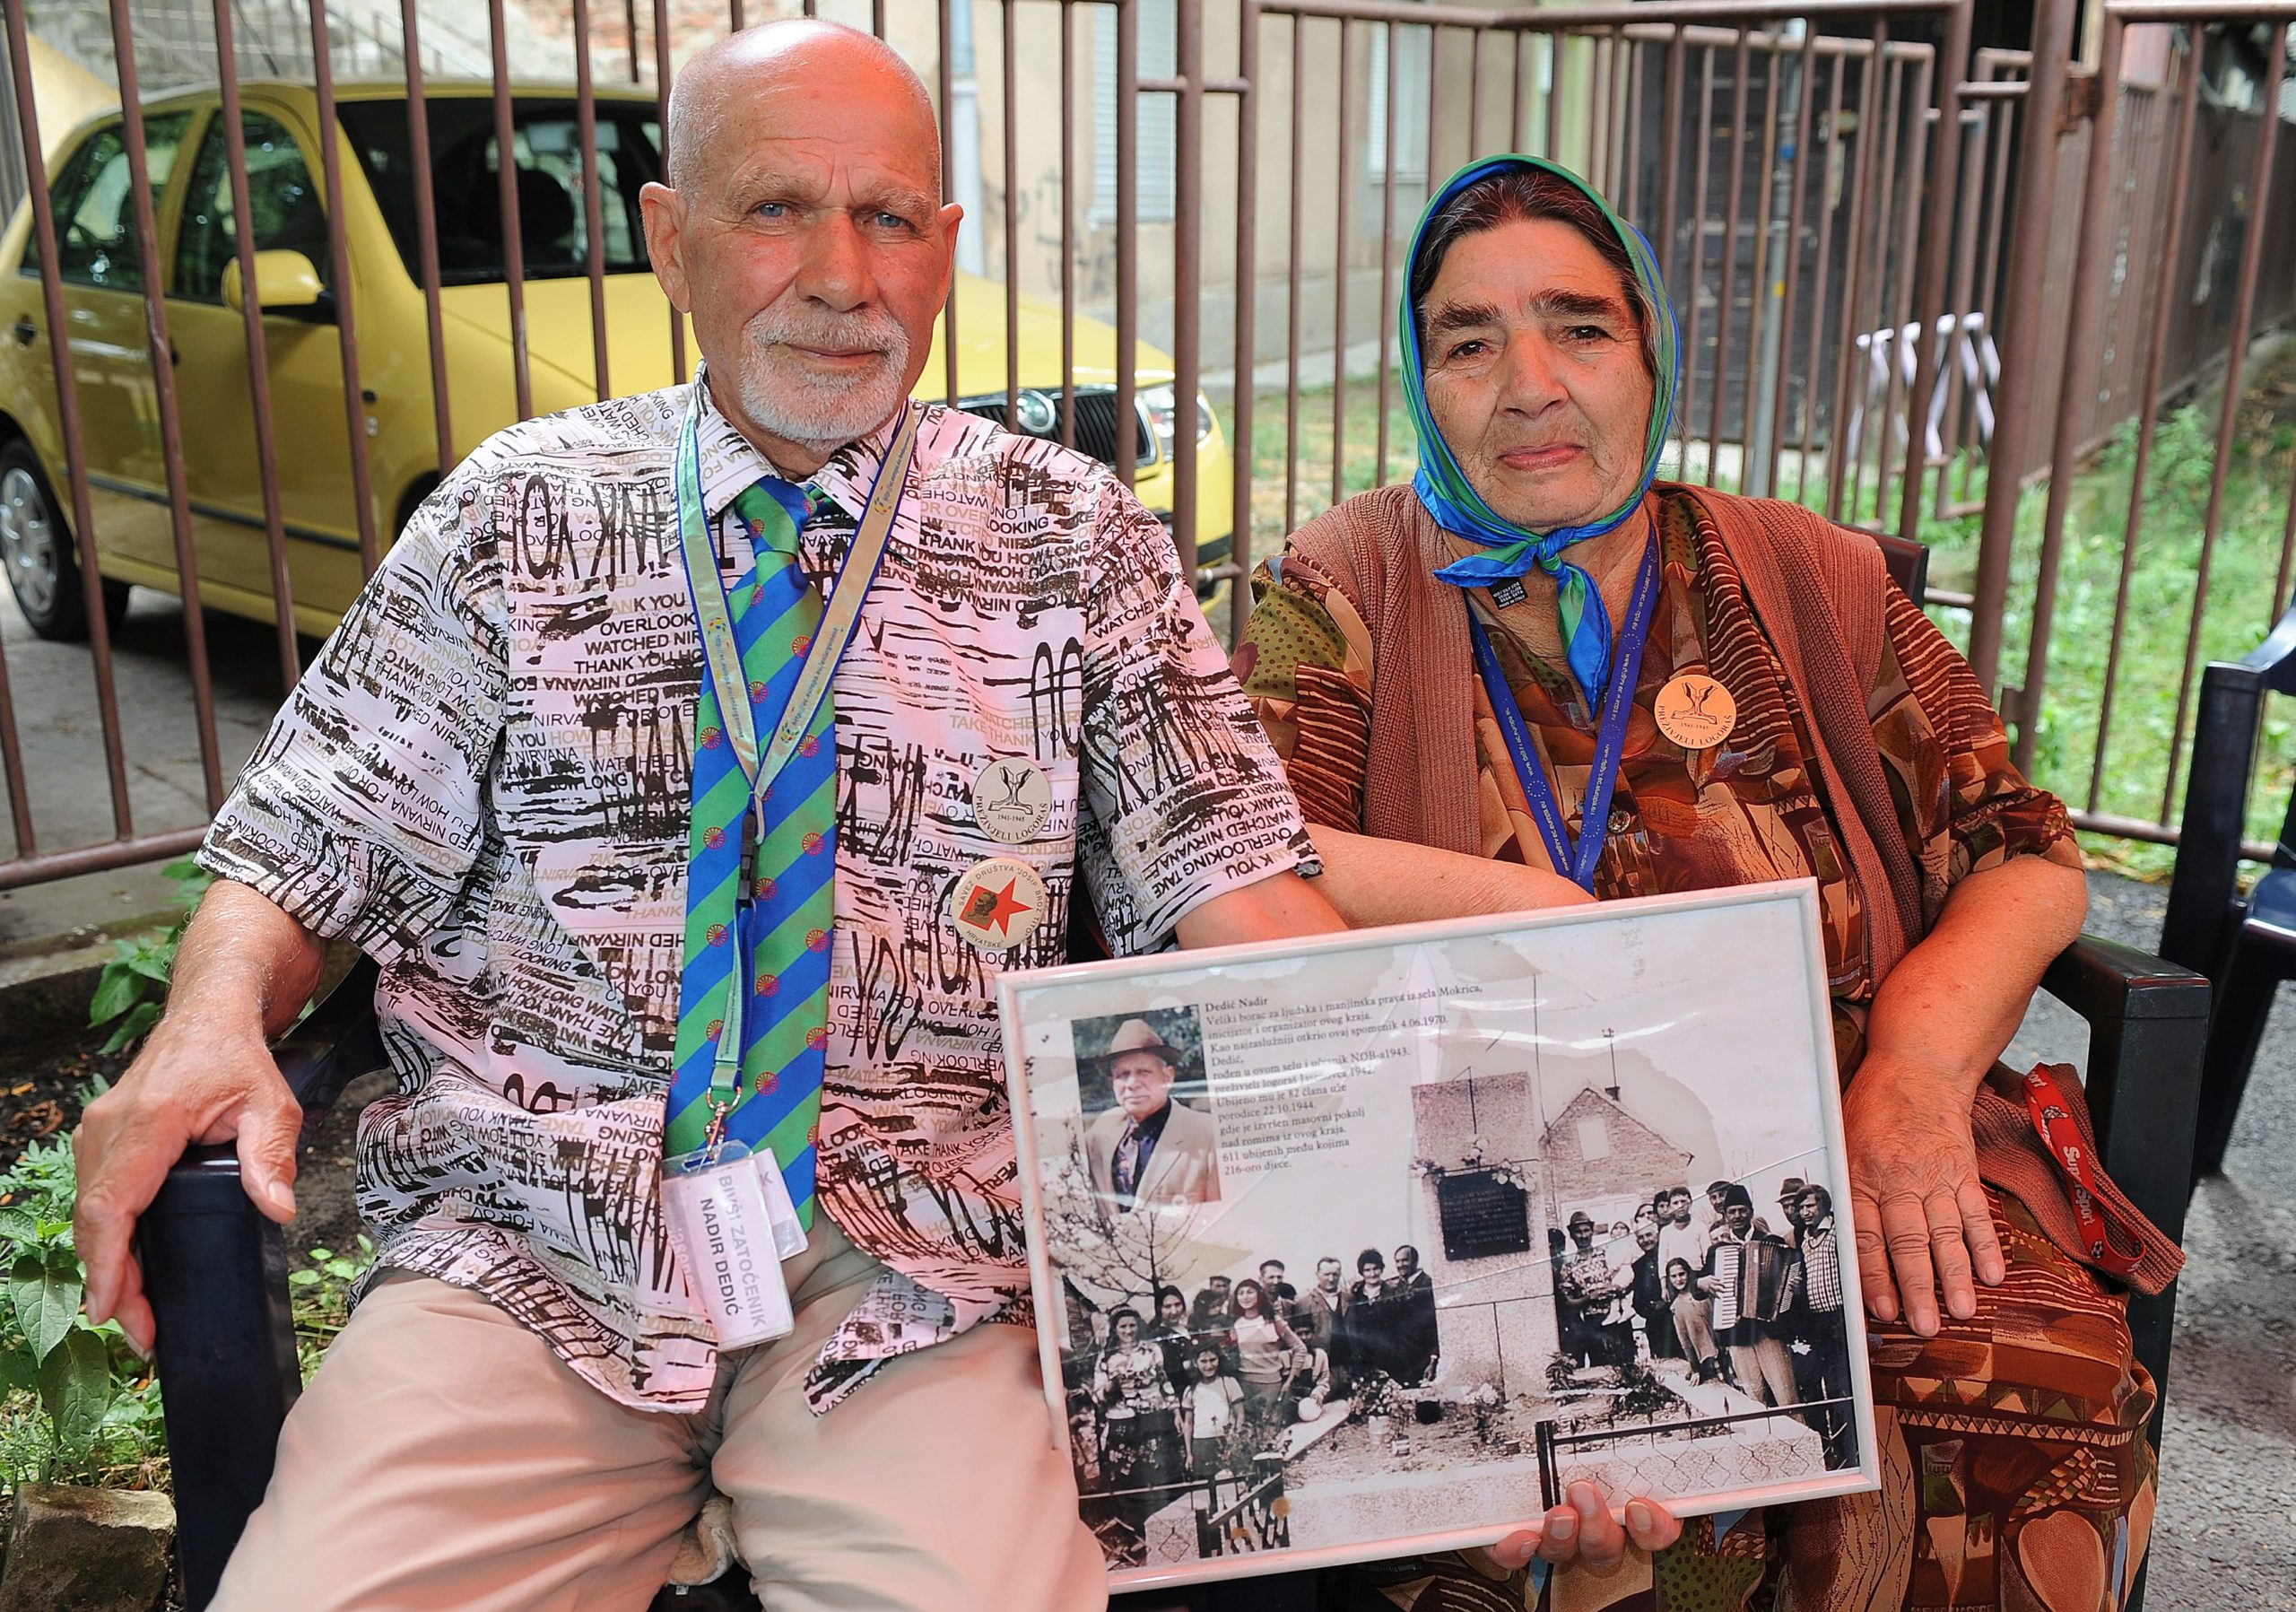 Nadir and Fatima Dedic, Roma survivors of the Jasenovac concentration camp, July 2010